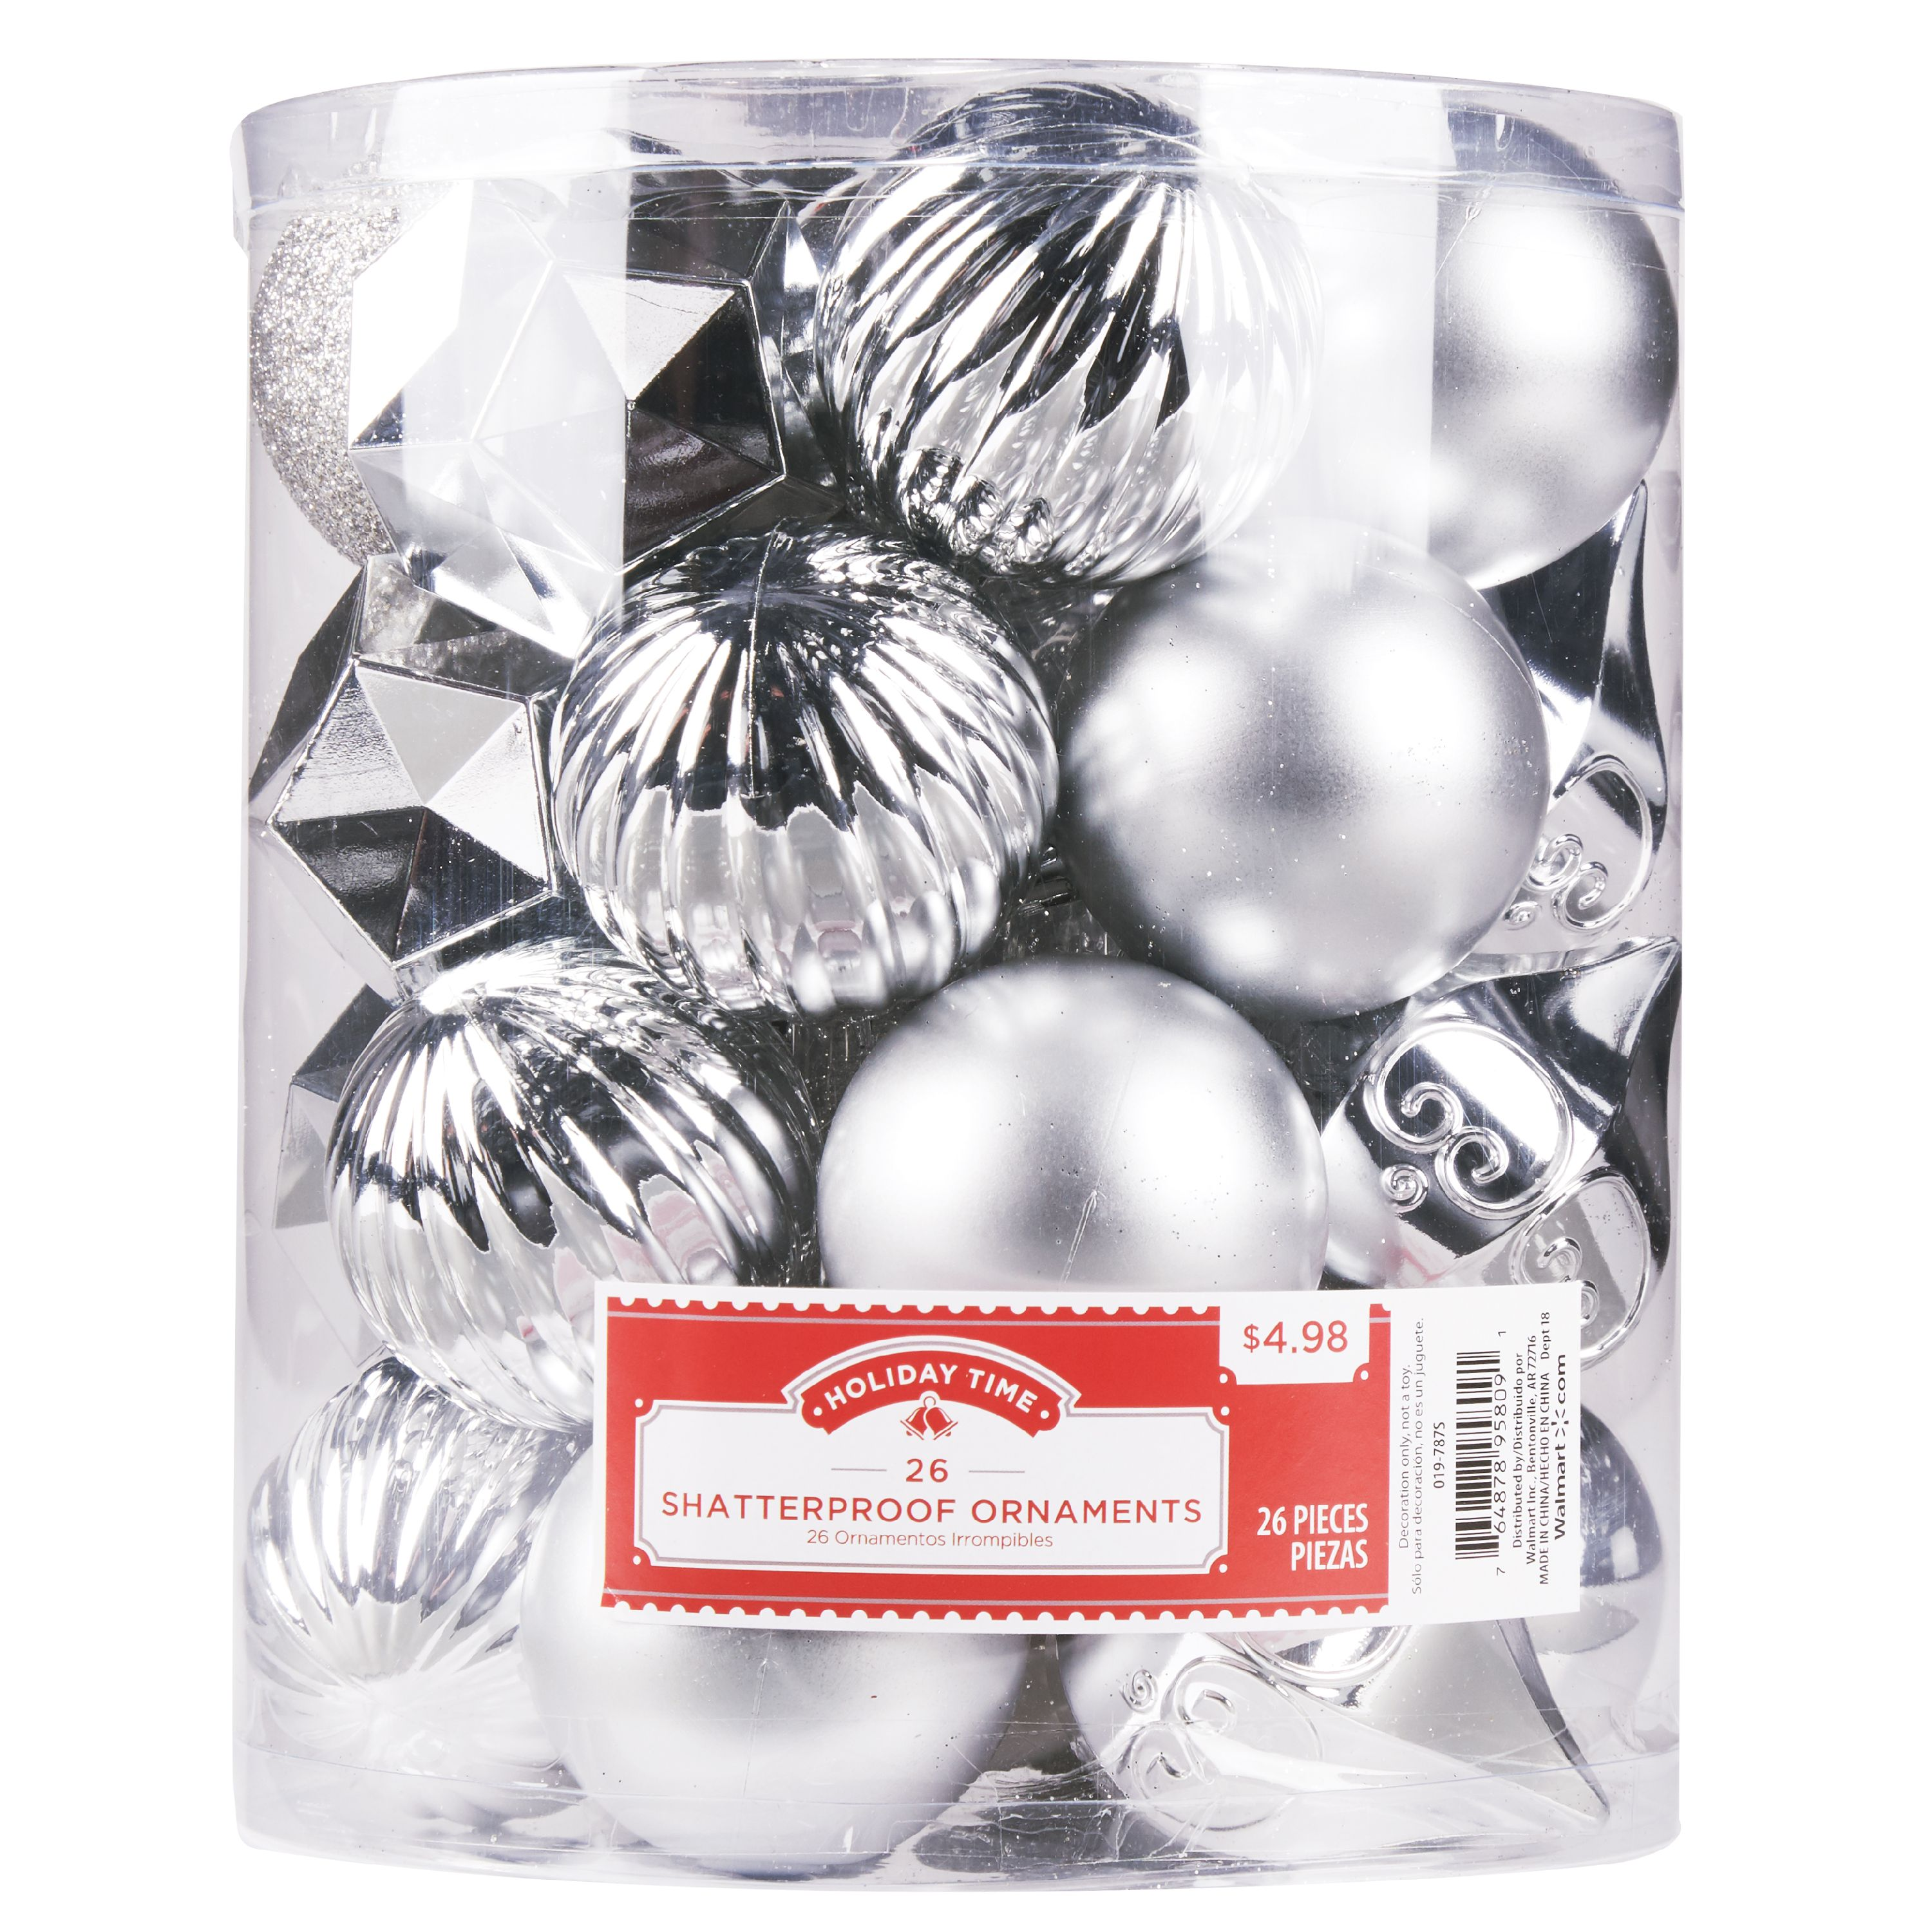 Holiday Time Shatterproof Ornaments, Silver, 26 Count